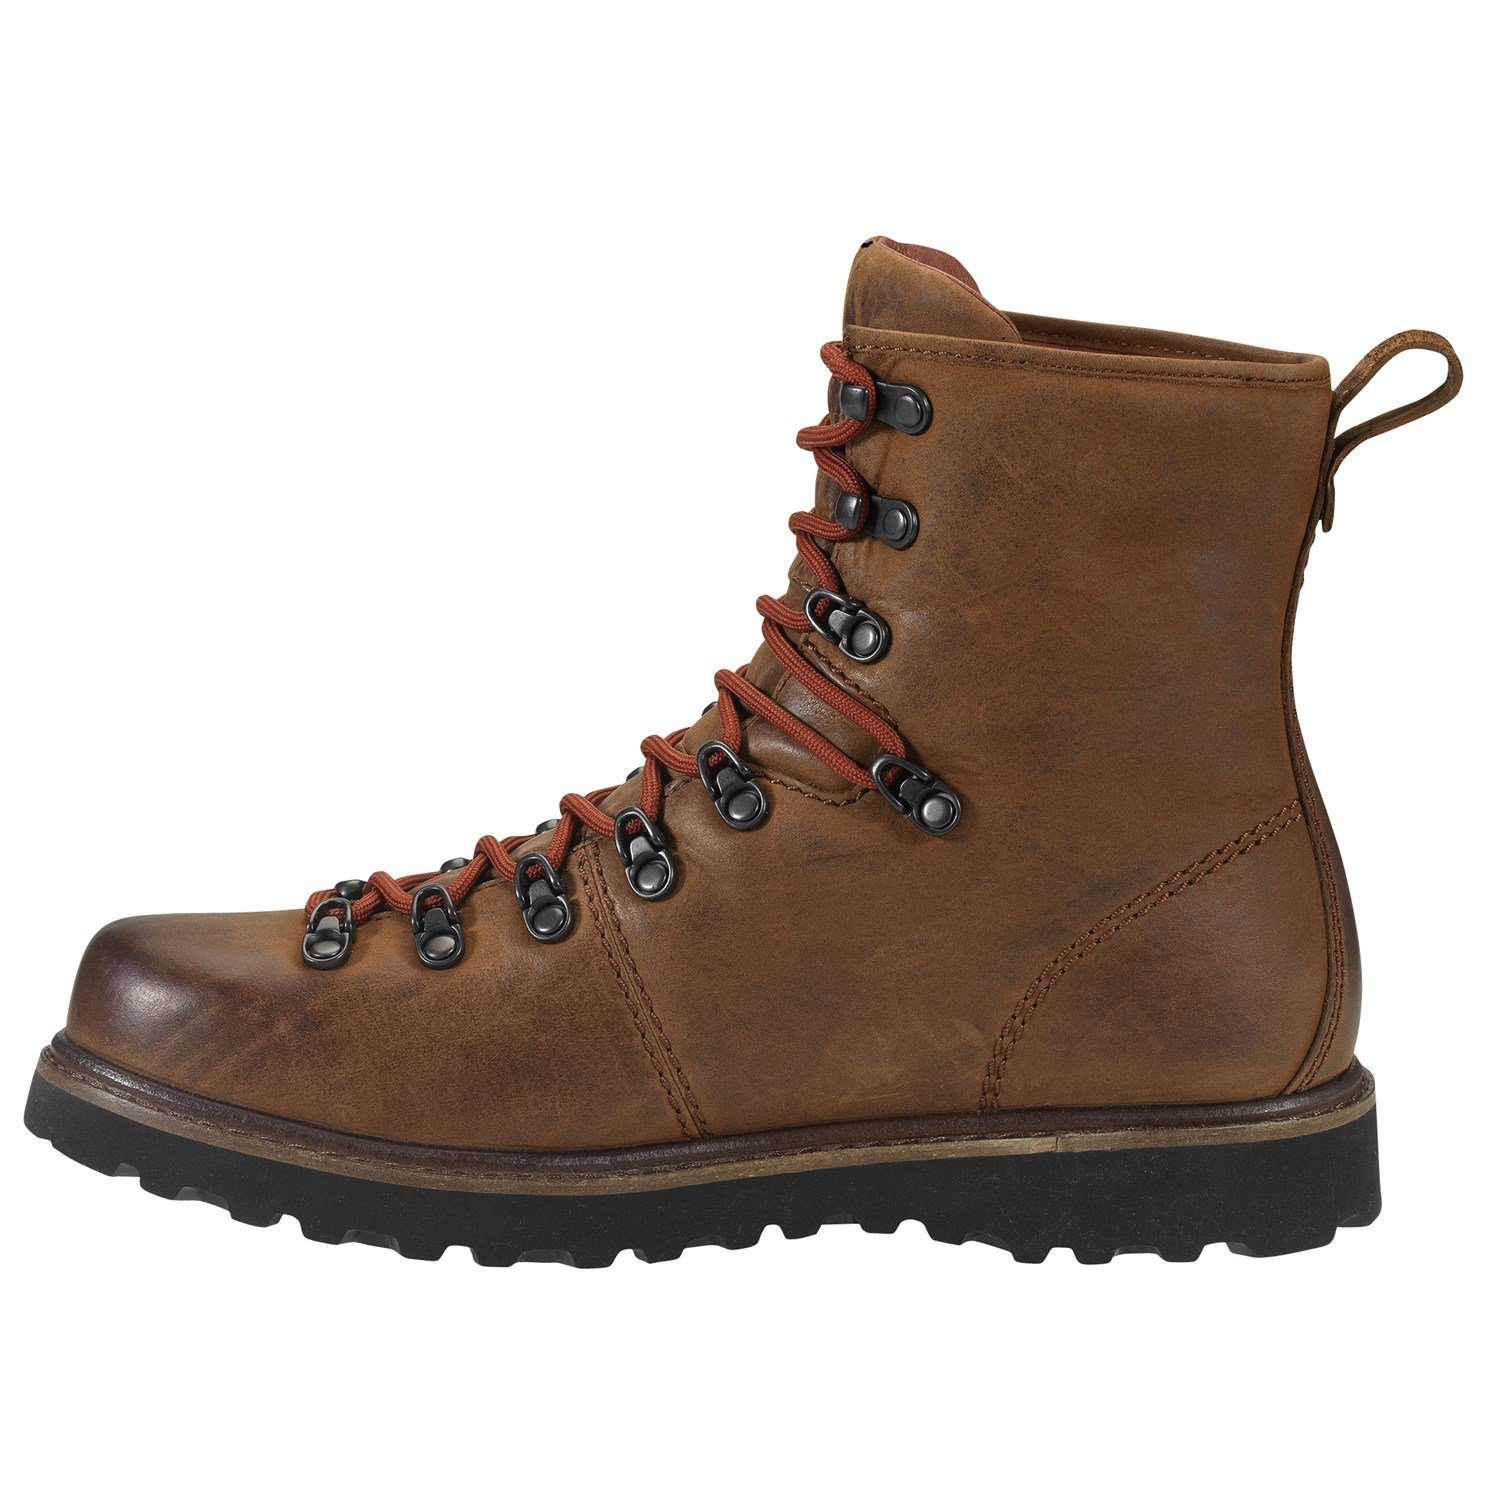 4407a42ba9b The North Face Ballard Boots